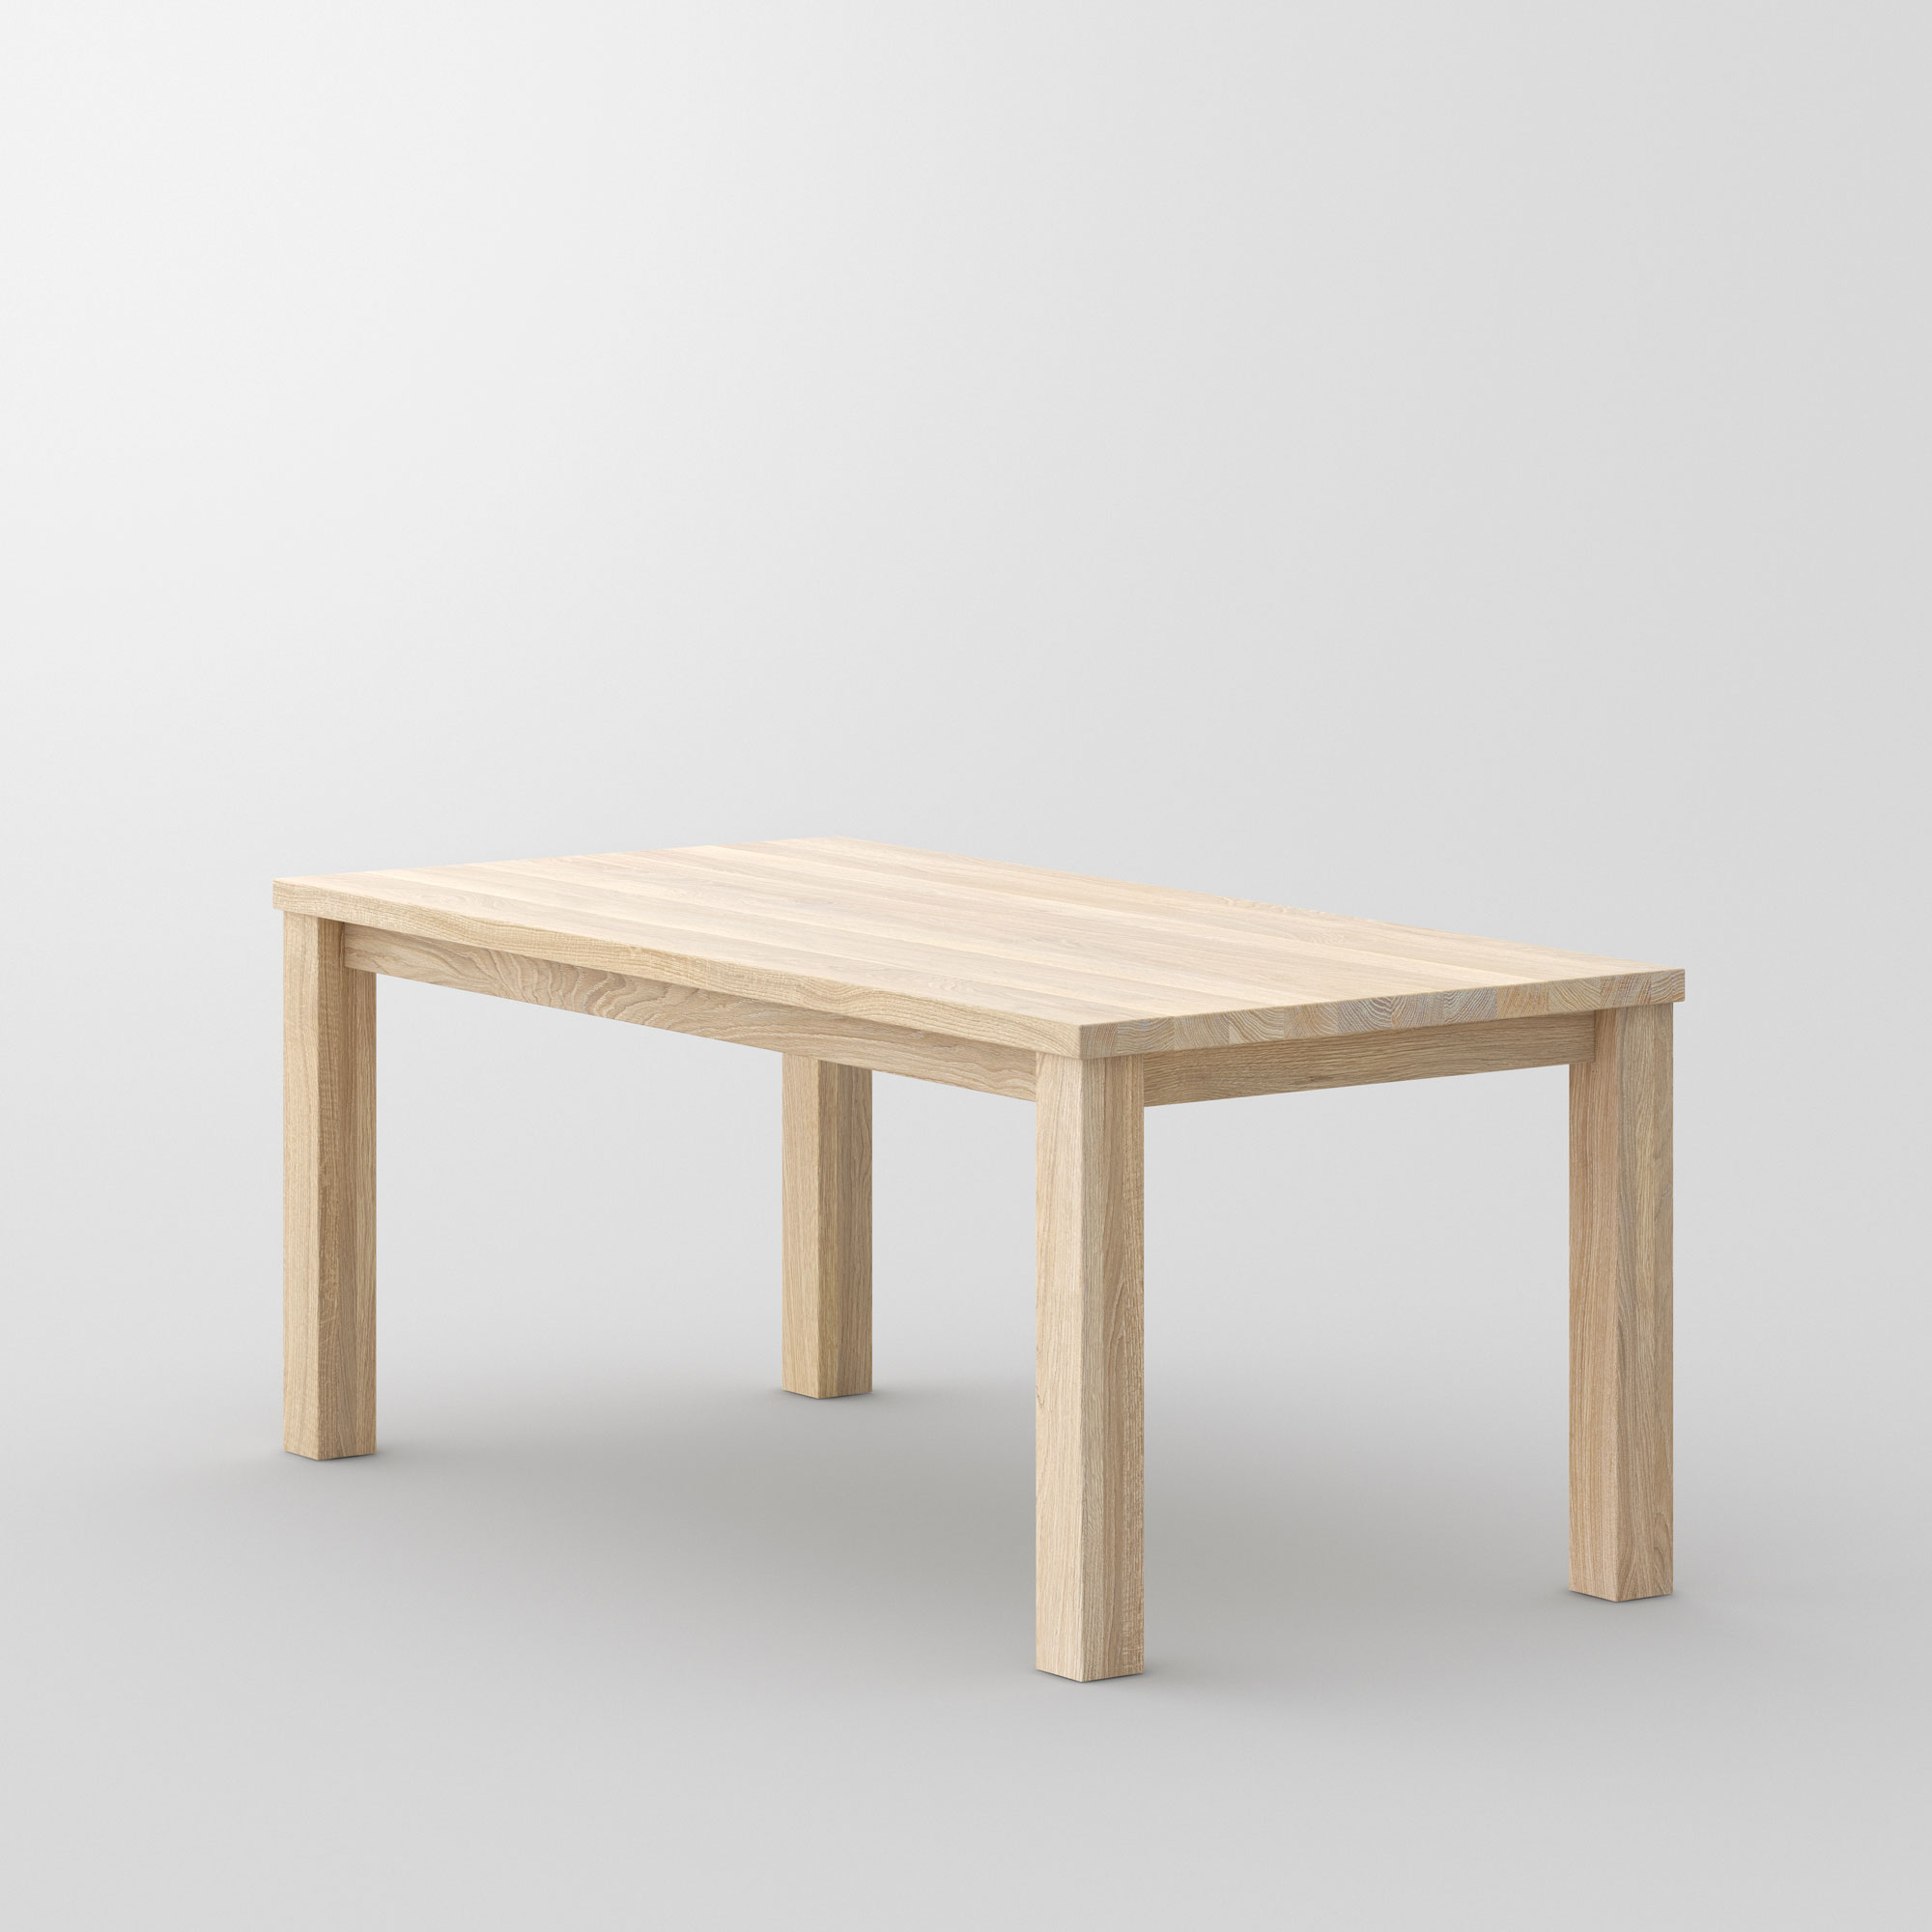 Tailor-Made Solid Wood Table FORTE 4 B9X9 cam3 custom made in solid wood by vitamin design